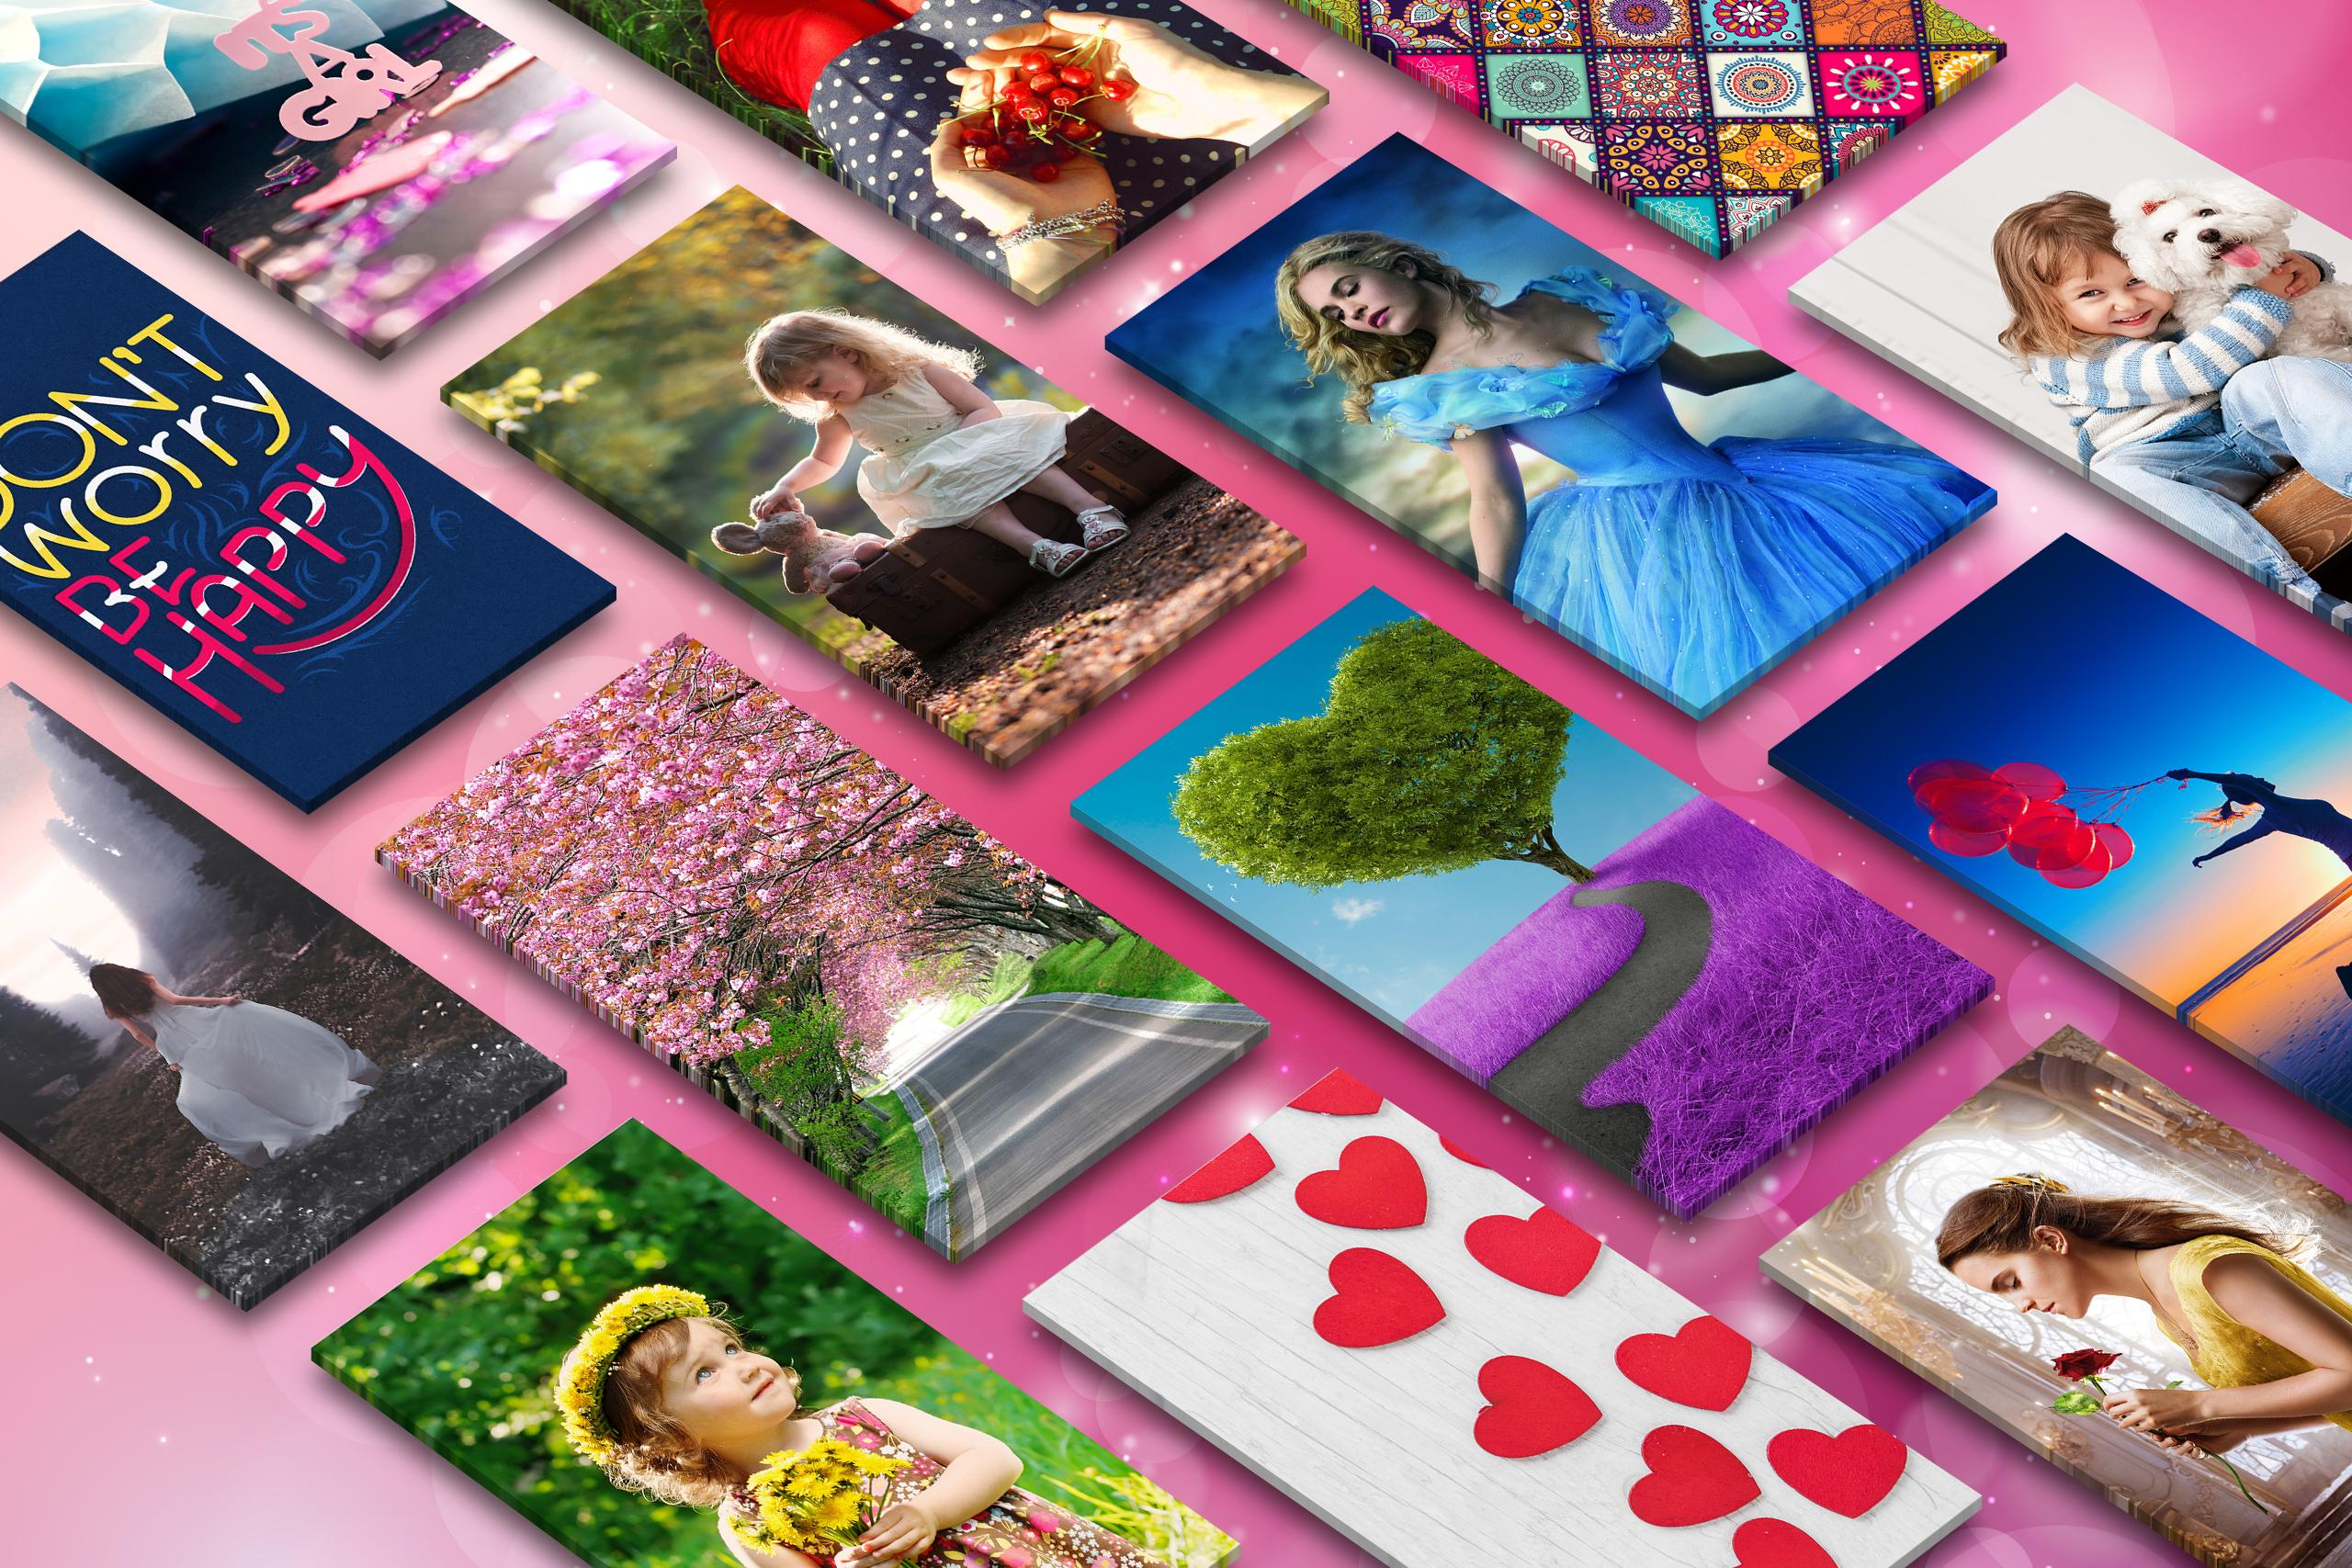 Wallpapers for Girls   Girly backgrounds for Android   APK Download 2560x1707